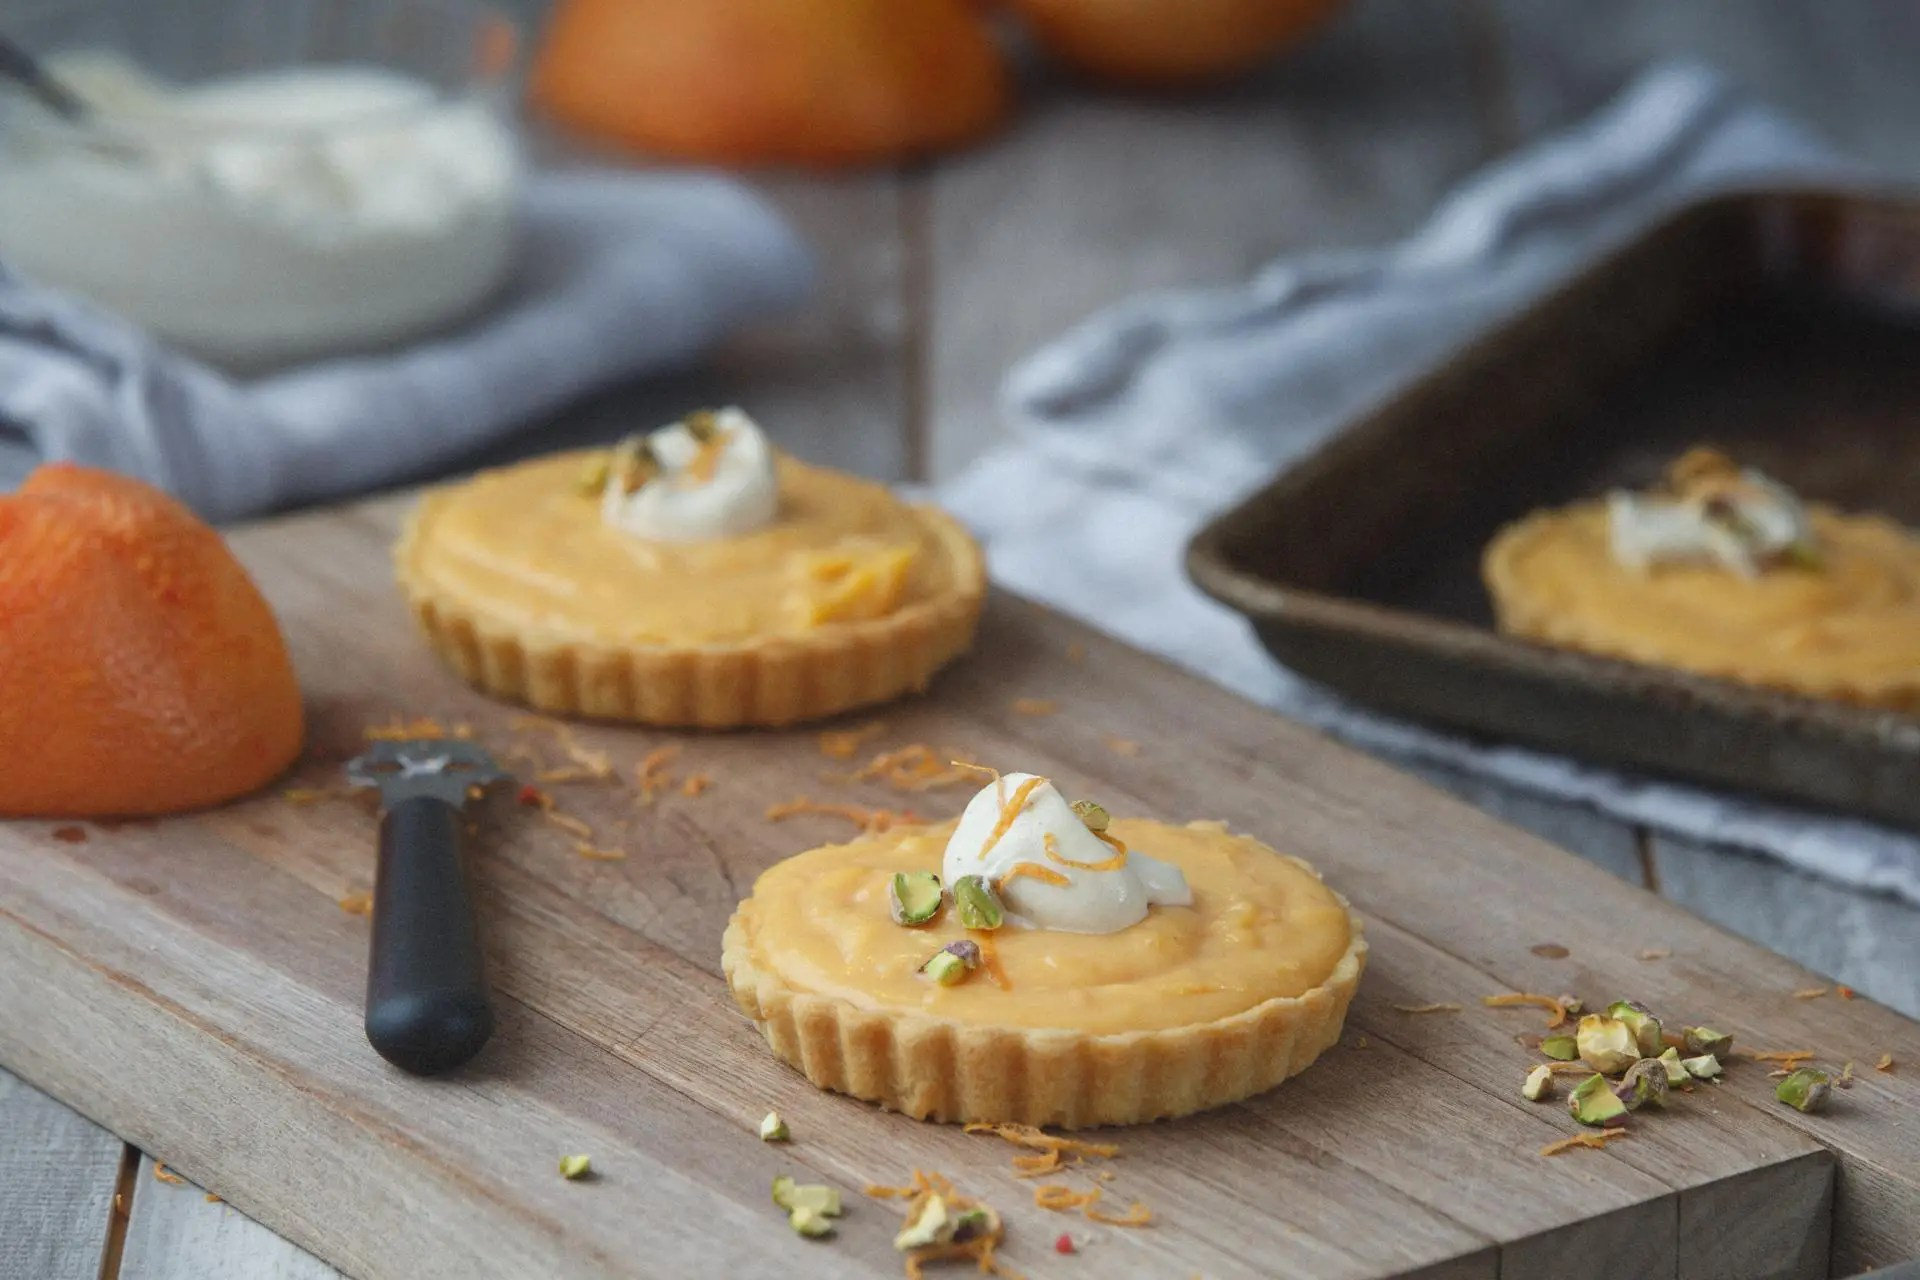 Grapefruit Curd Tart with Chamomile Infused Whip Cream